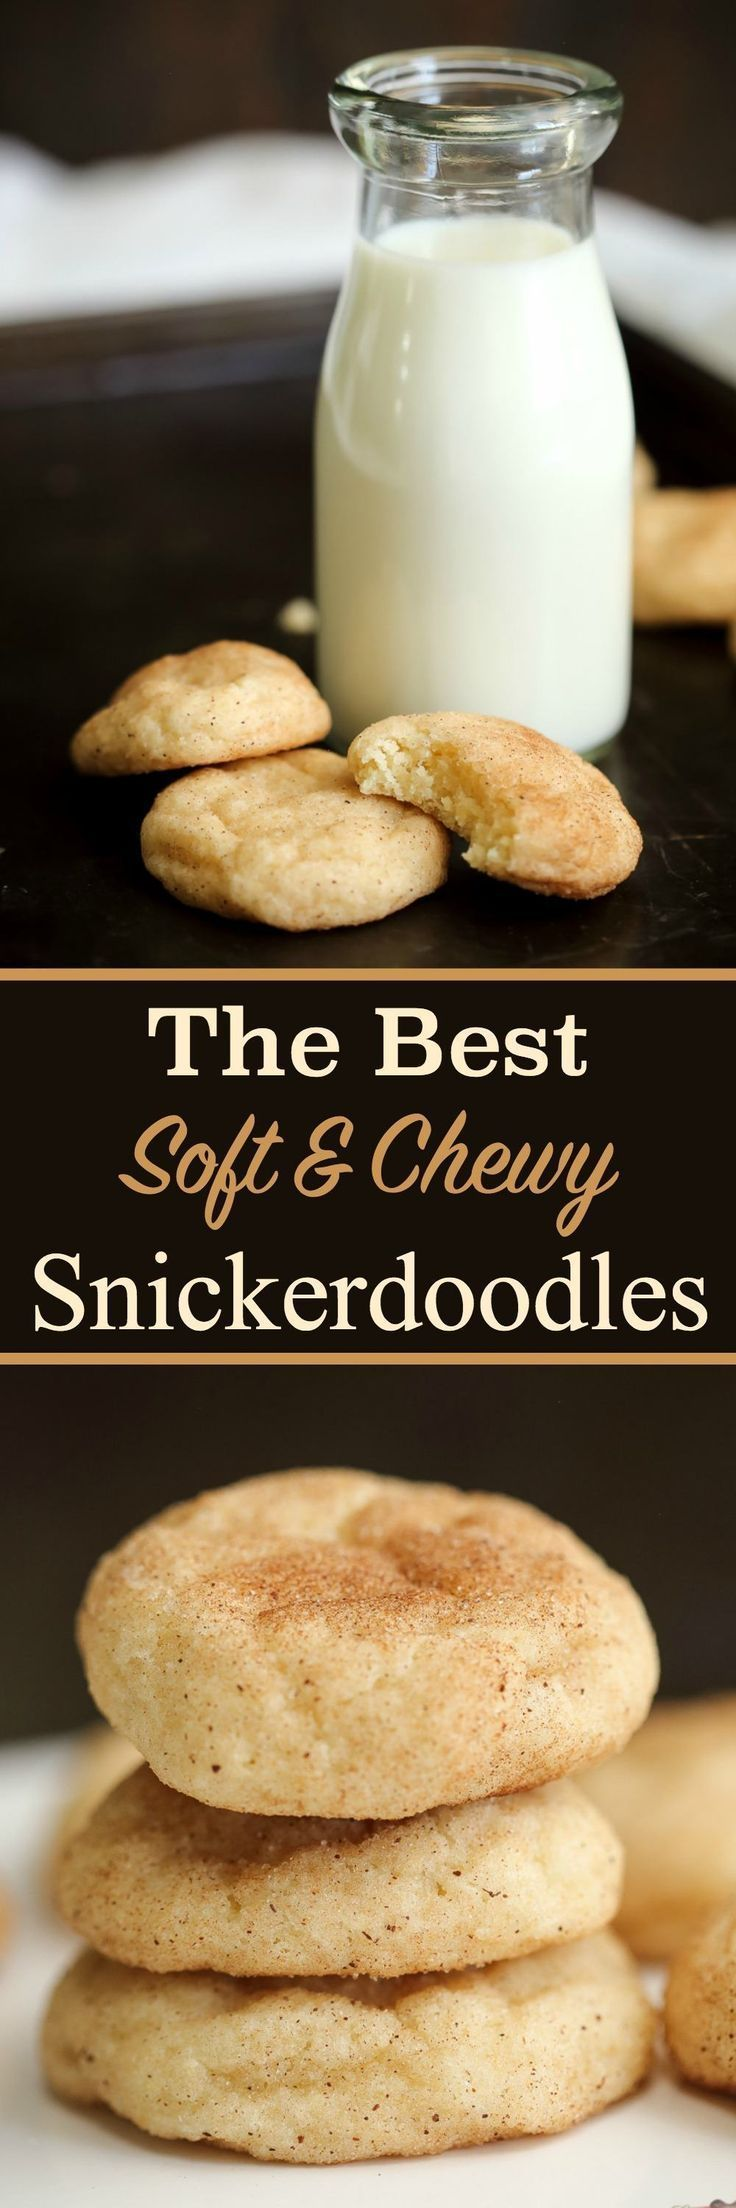 Discover the perfect soft & chewy snickerdoodle cookies recipe ever! These are the best homemade snickerdoodle cookies you'll ever try and oh so easy to bake from scratch! Crisp cinnamon outside & a soft fluffy buttery inside!